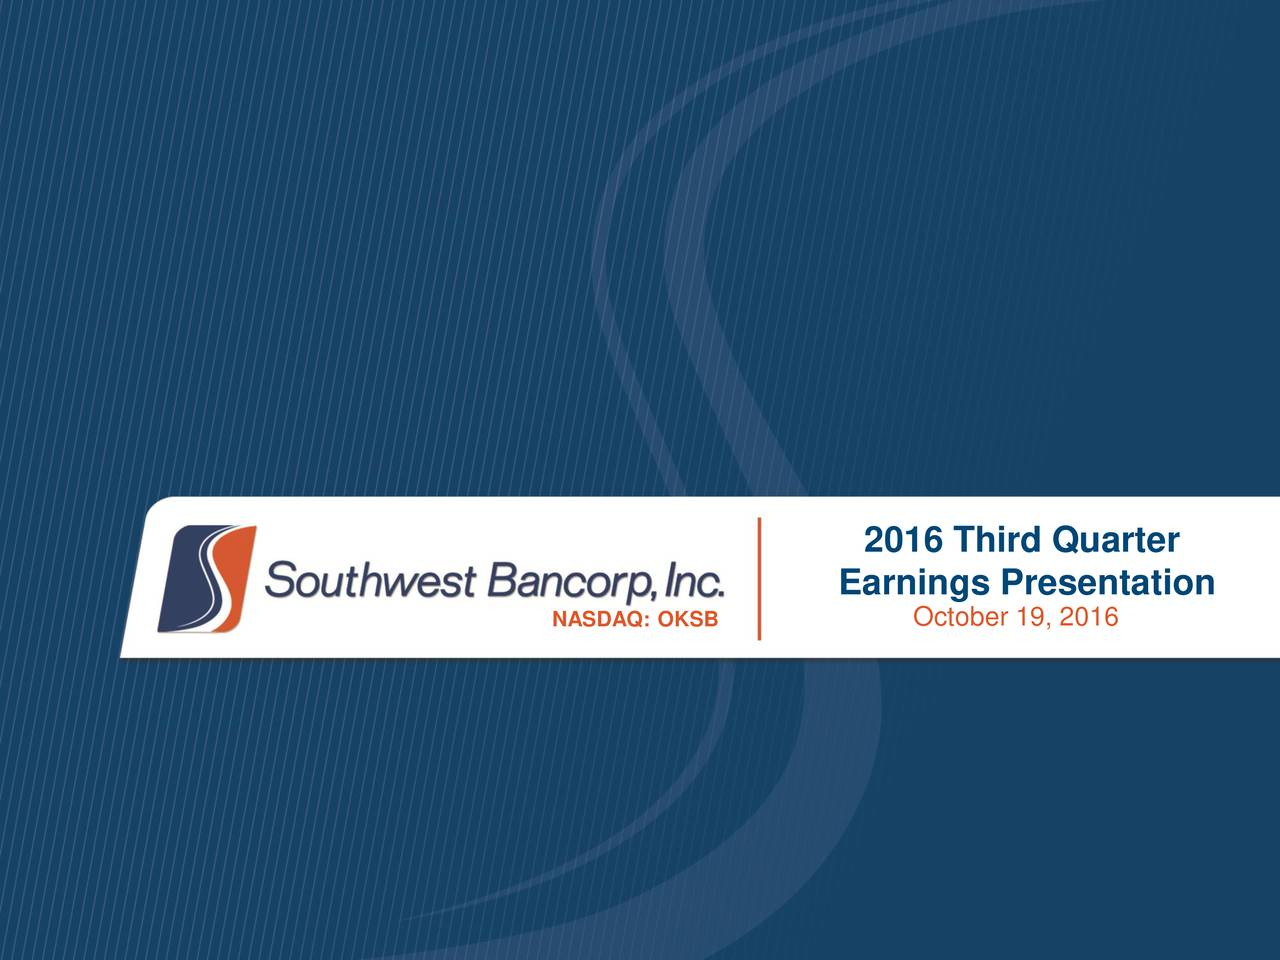 Earnings Presentation NASDAQ: OKSB October 19, 2016